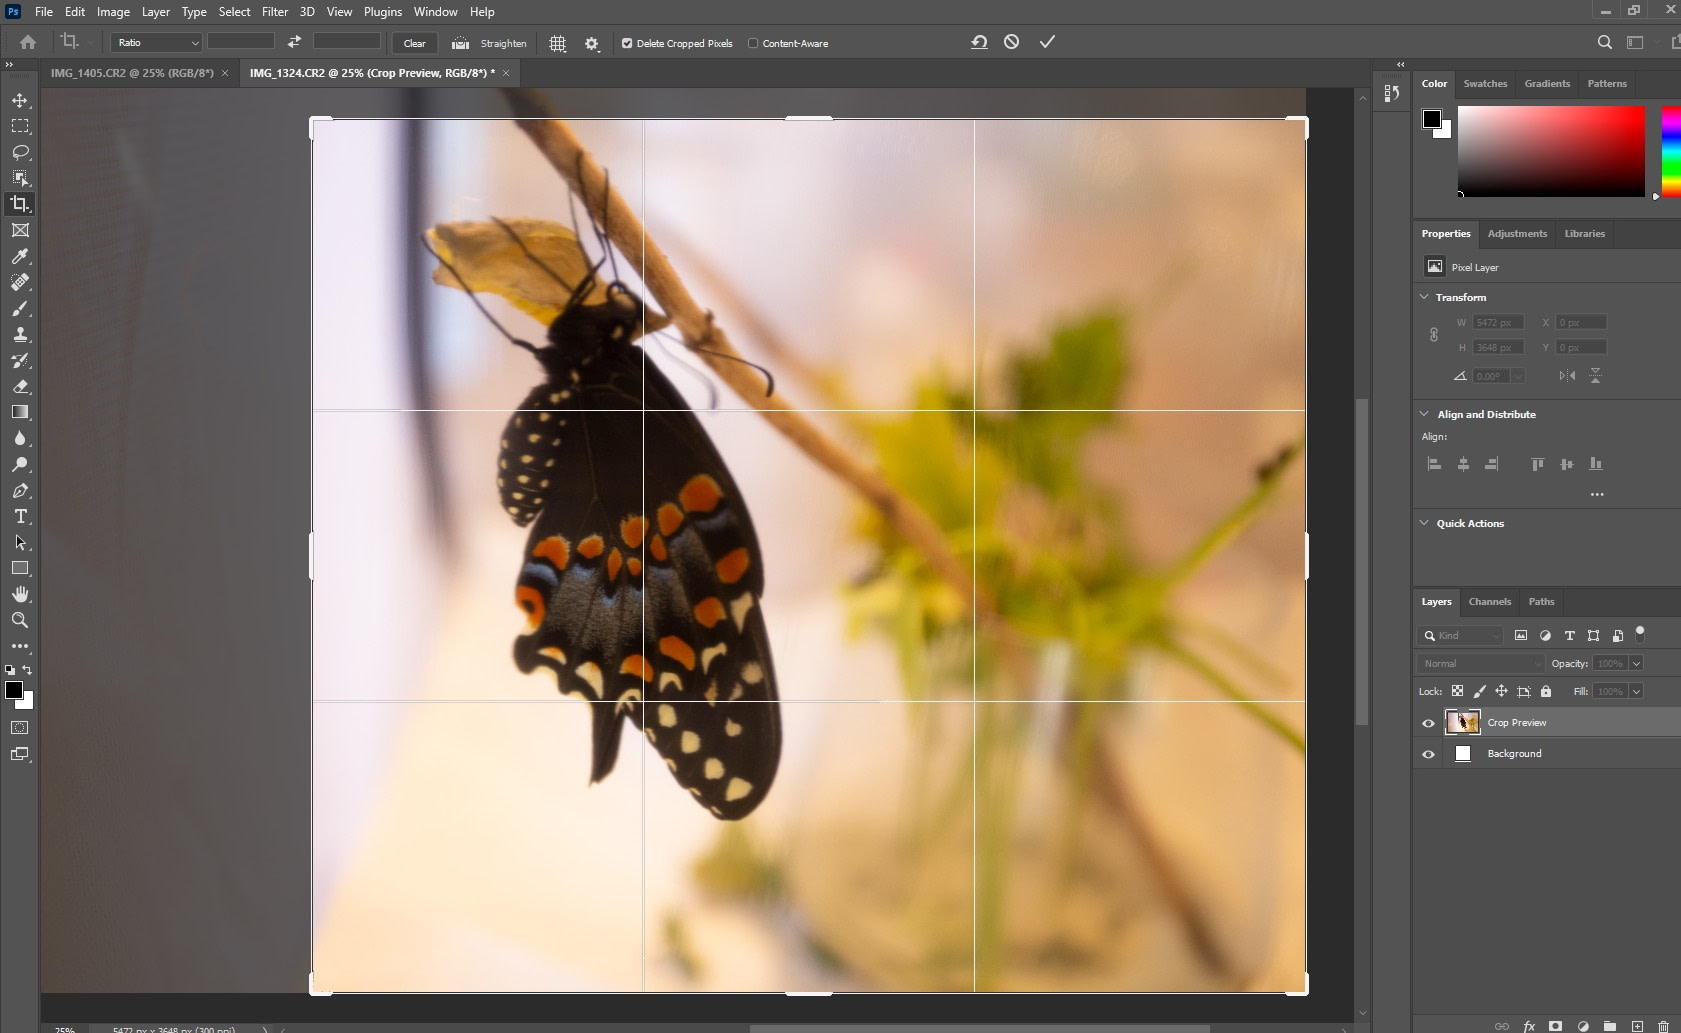 photo cropping in photoshop - Photoshop vs Illustrator vs InDesign